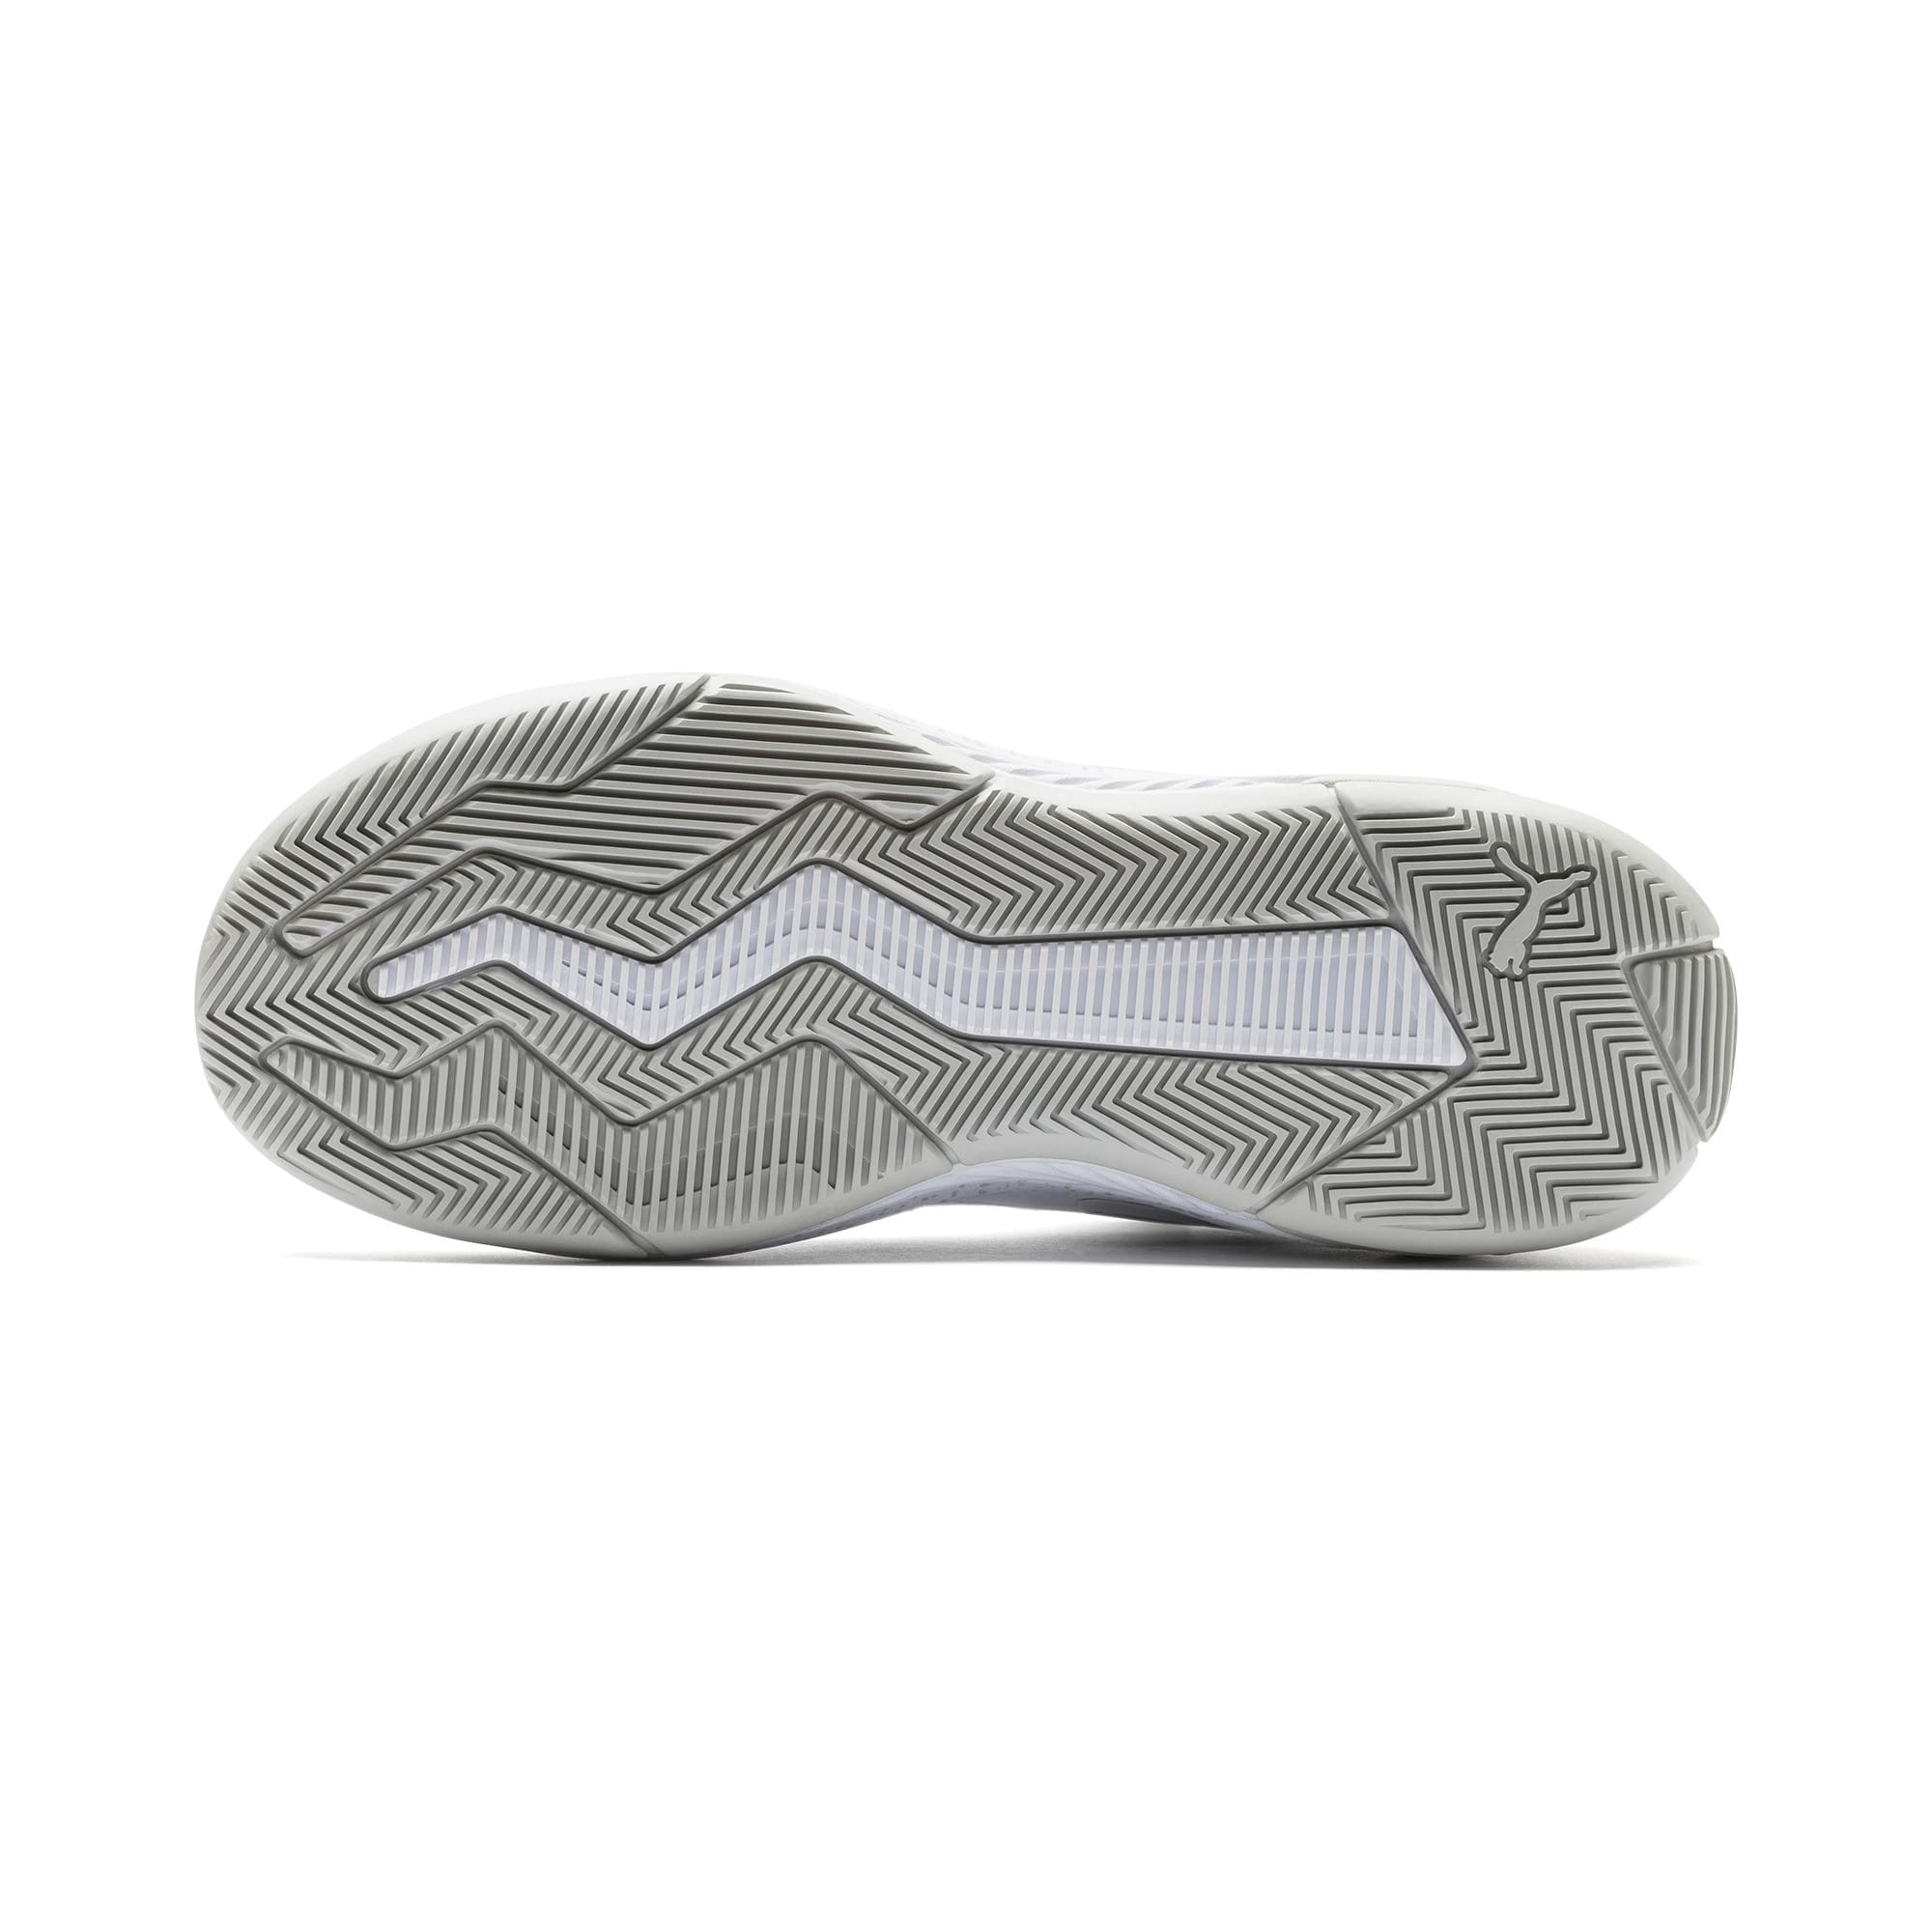 Thumbnail 4 of Uproar Core Basketball Shoes, Puma White-Glacier Gray, medium